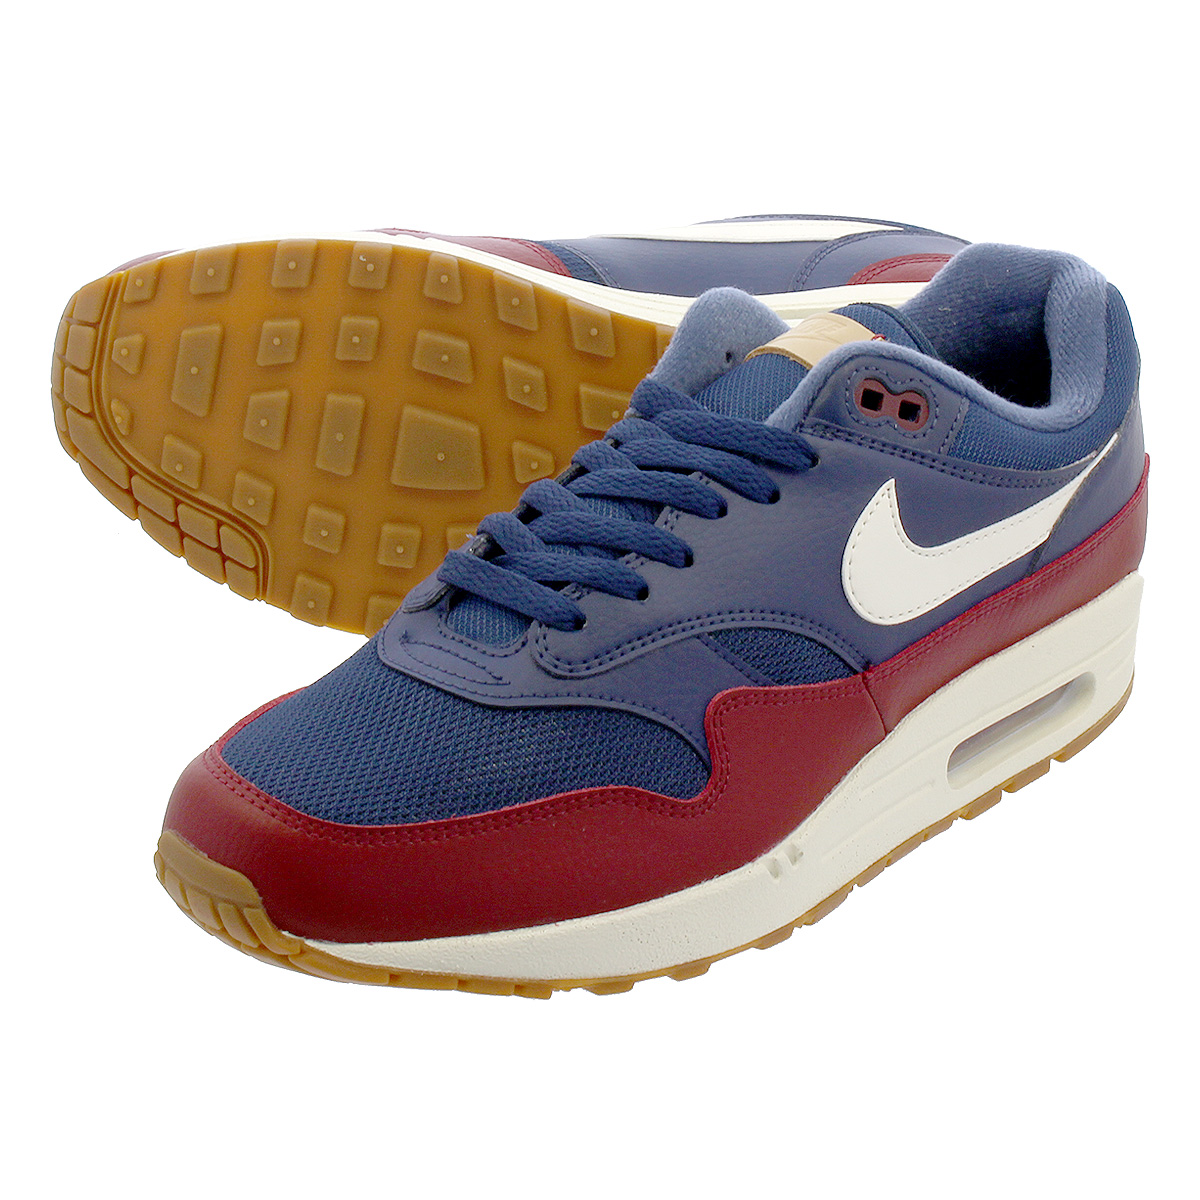 many fashionable sale retailer online here NIKE AIR MAX 1 Kie Ney AMAX 1 NAVY/TEAM RED/SAIL ah8145-400